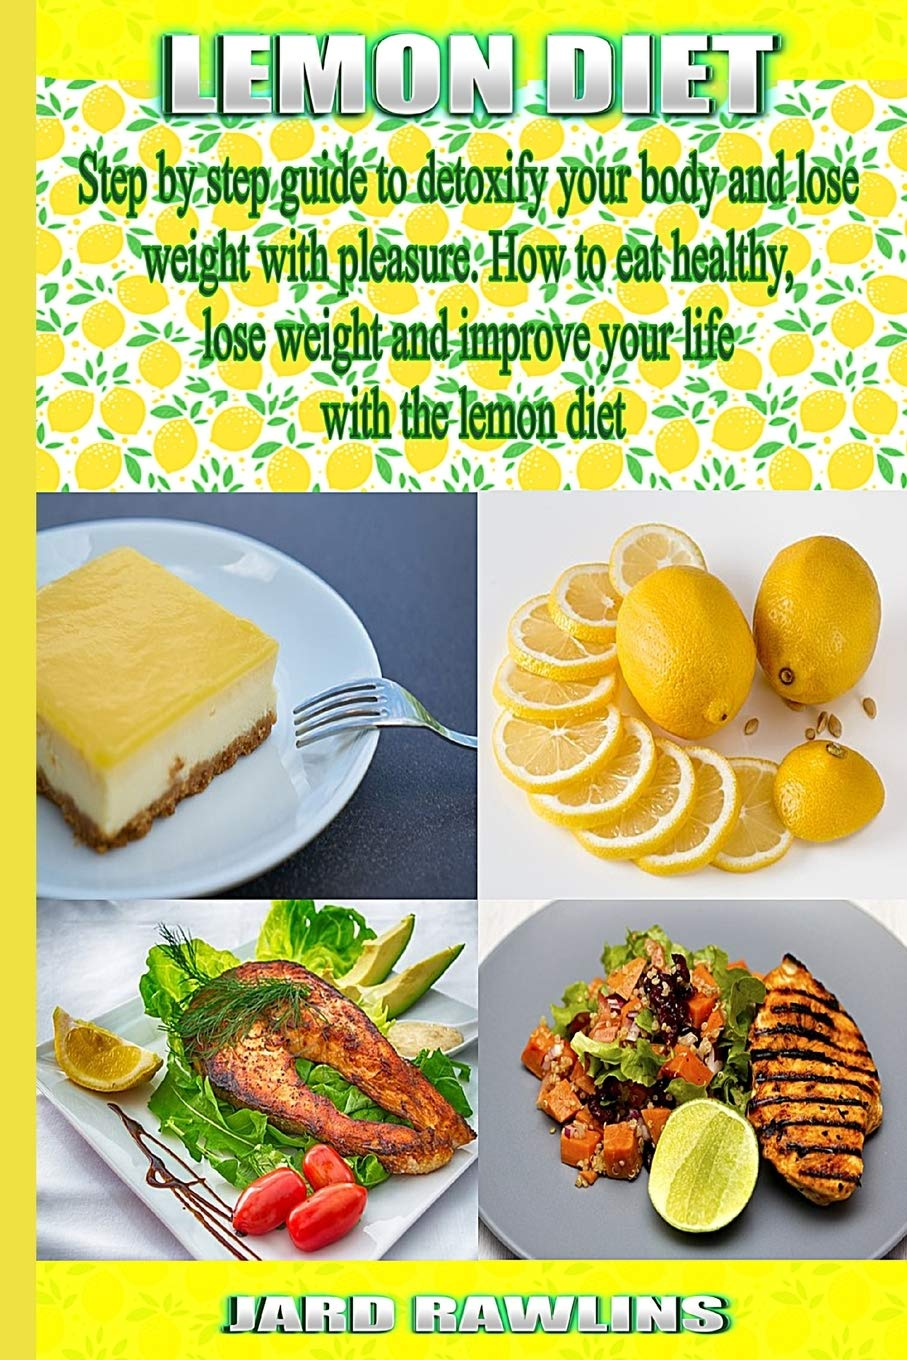 LEMON DIET: Step by step guide to detoxify your body and lose